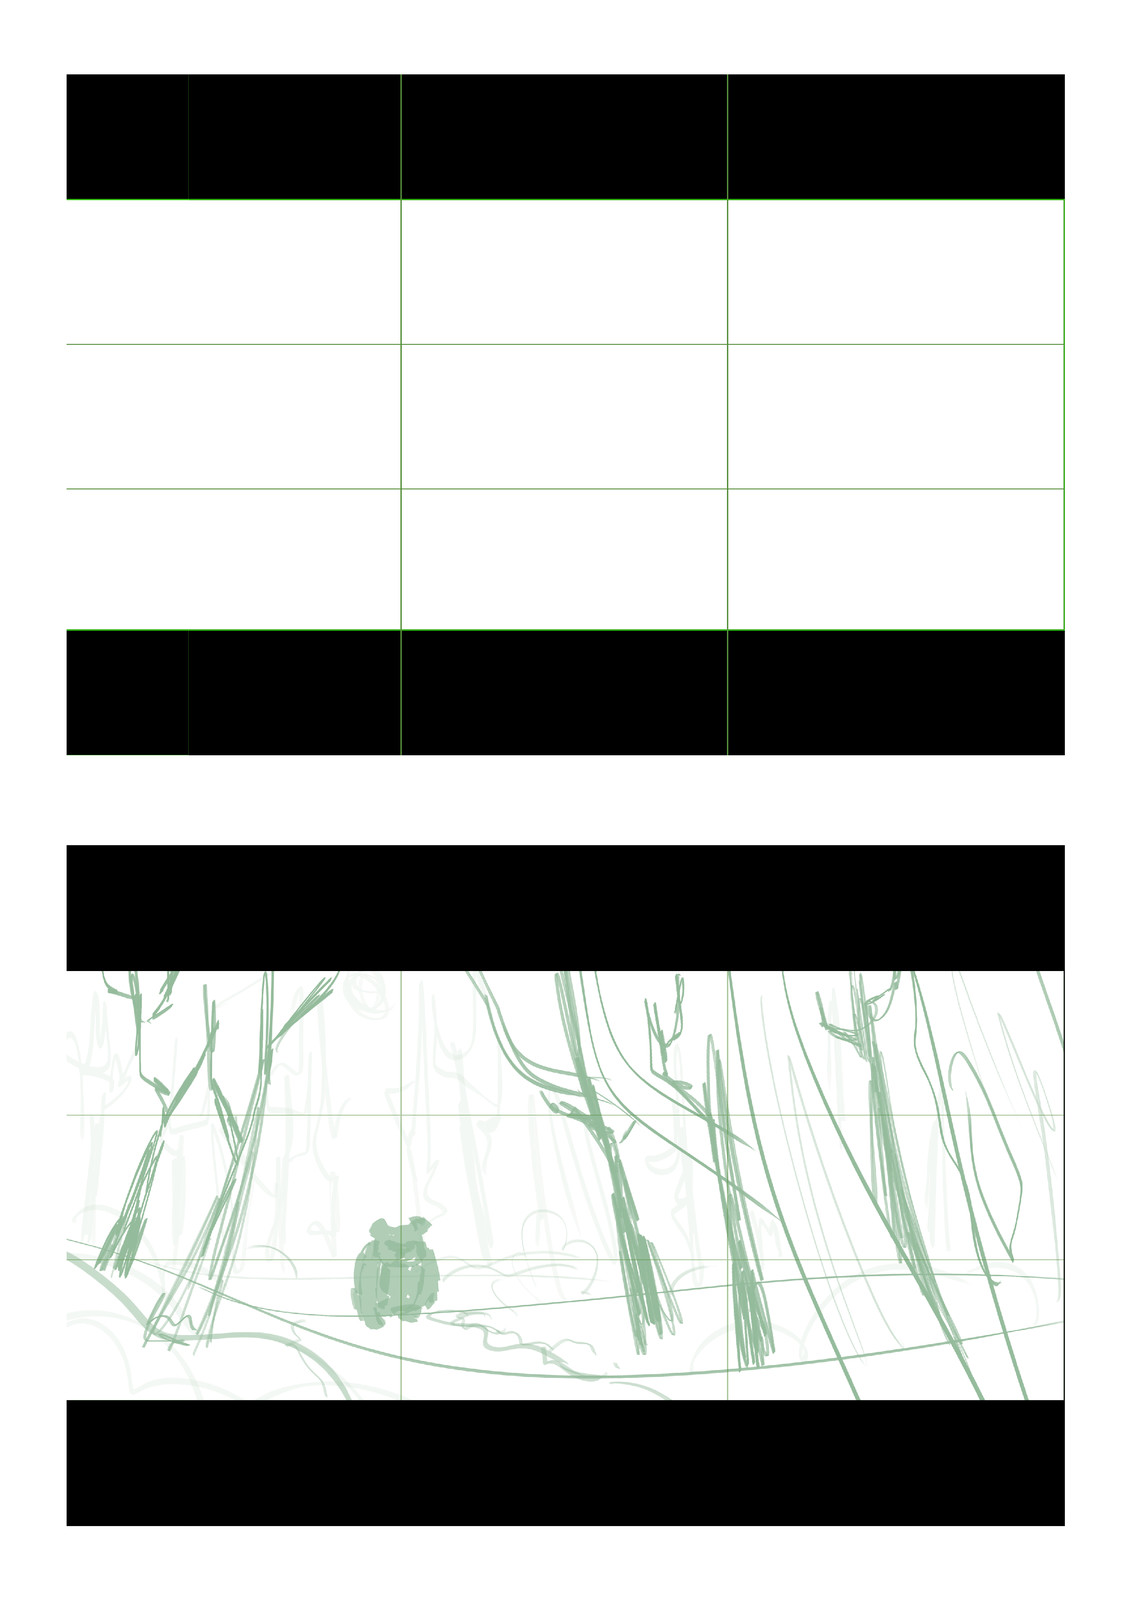 Setting the grid and sketching.